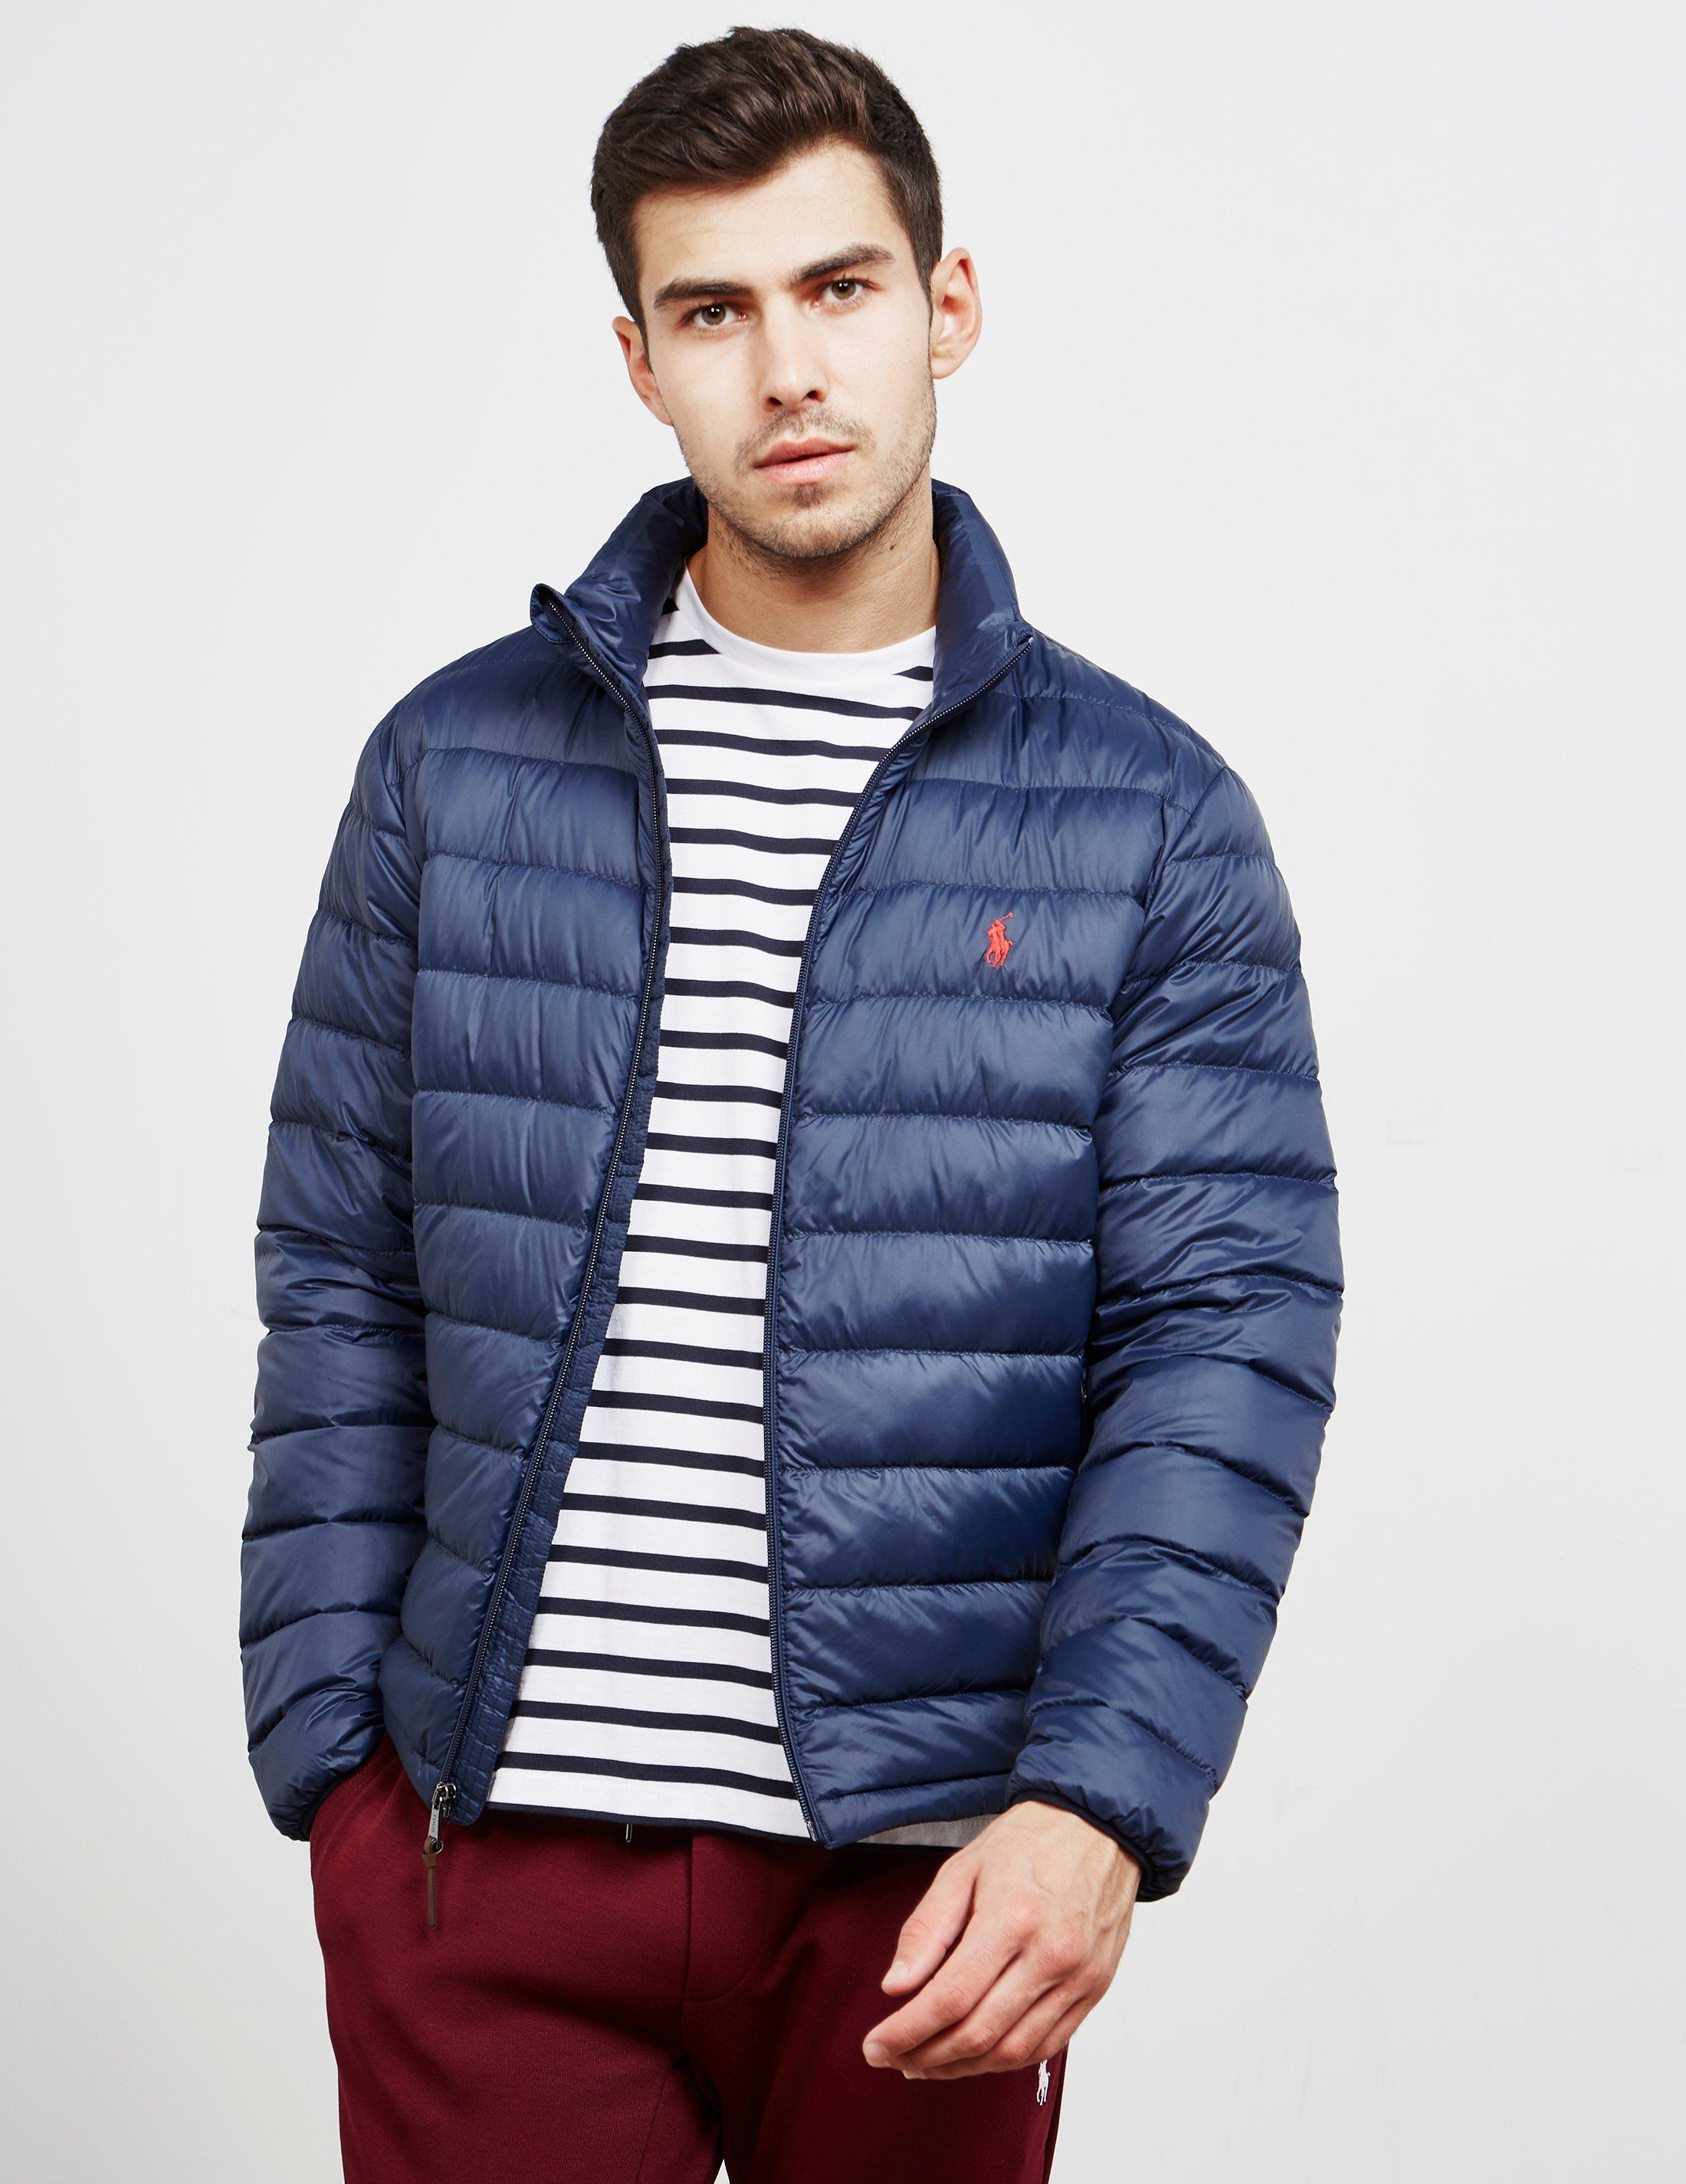 c18b3fb2e62ad Polo Ralph Lauren Lightweight Padded Jacket Navy Blue in Blue for ...